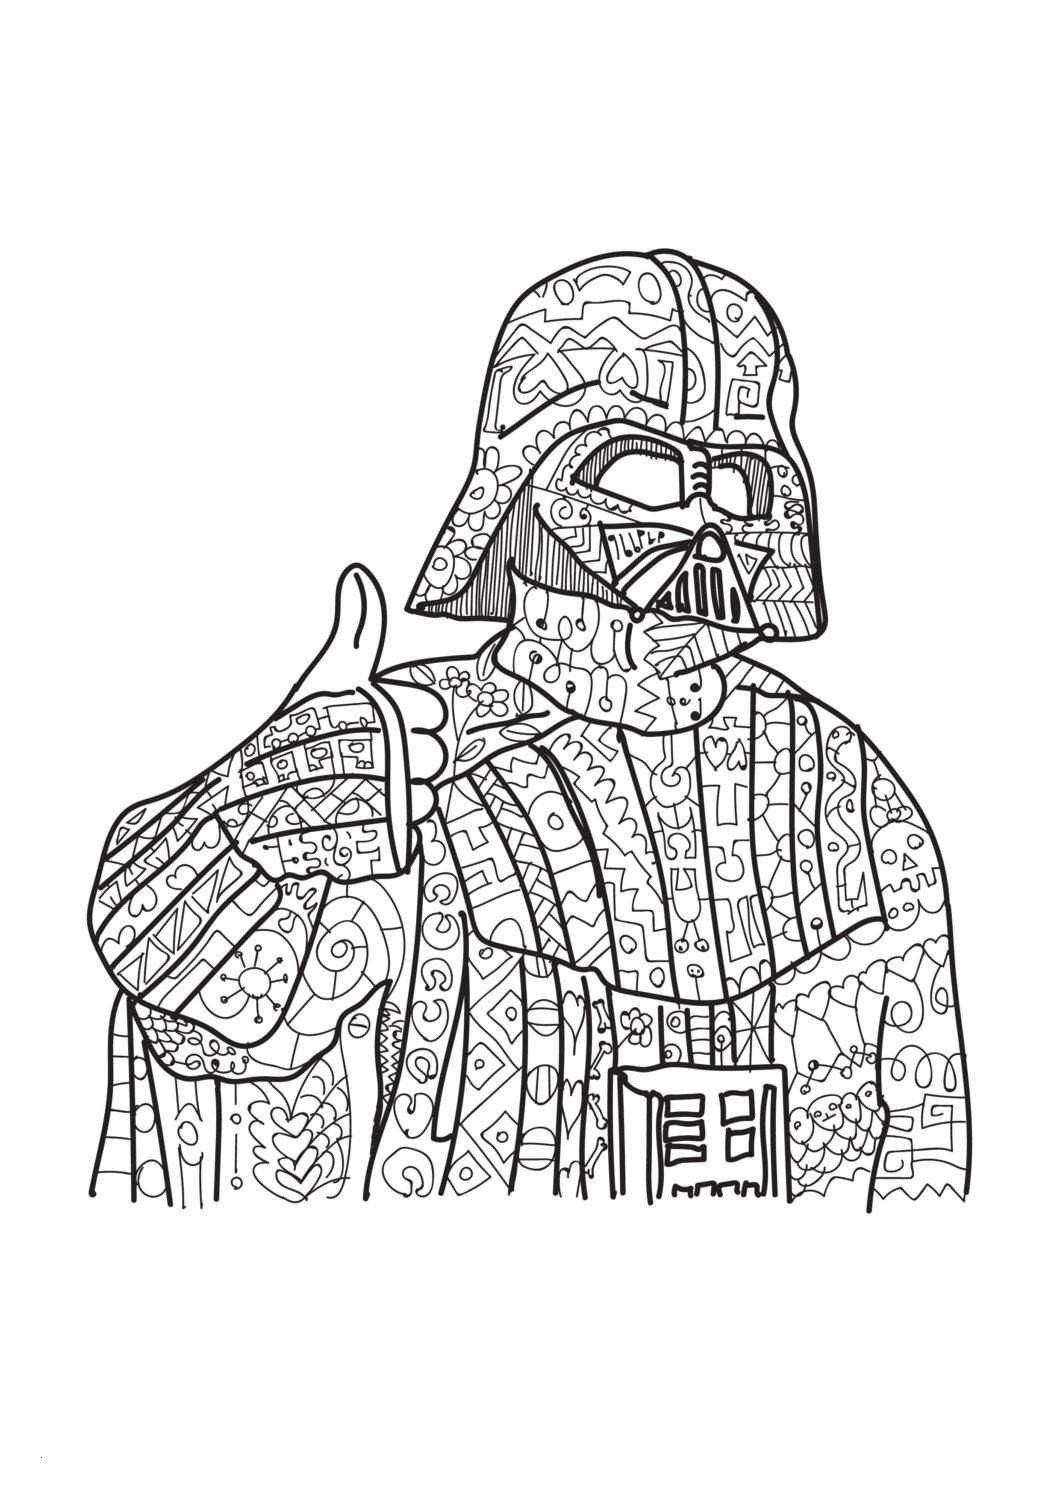 Darth Vader Ausmalbilder Das Beste Von Darth Vader Coloring Pages Beautiful Malvorlagen Star Wars Kostenlos Bild